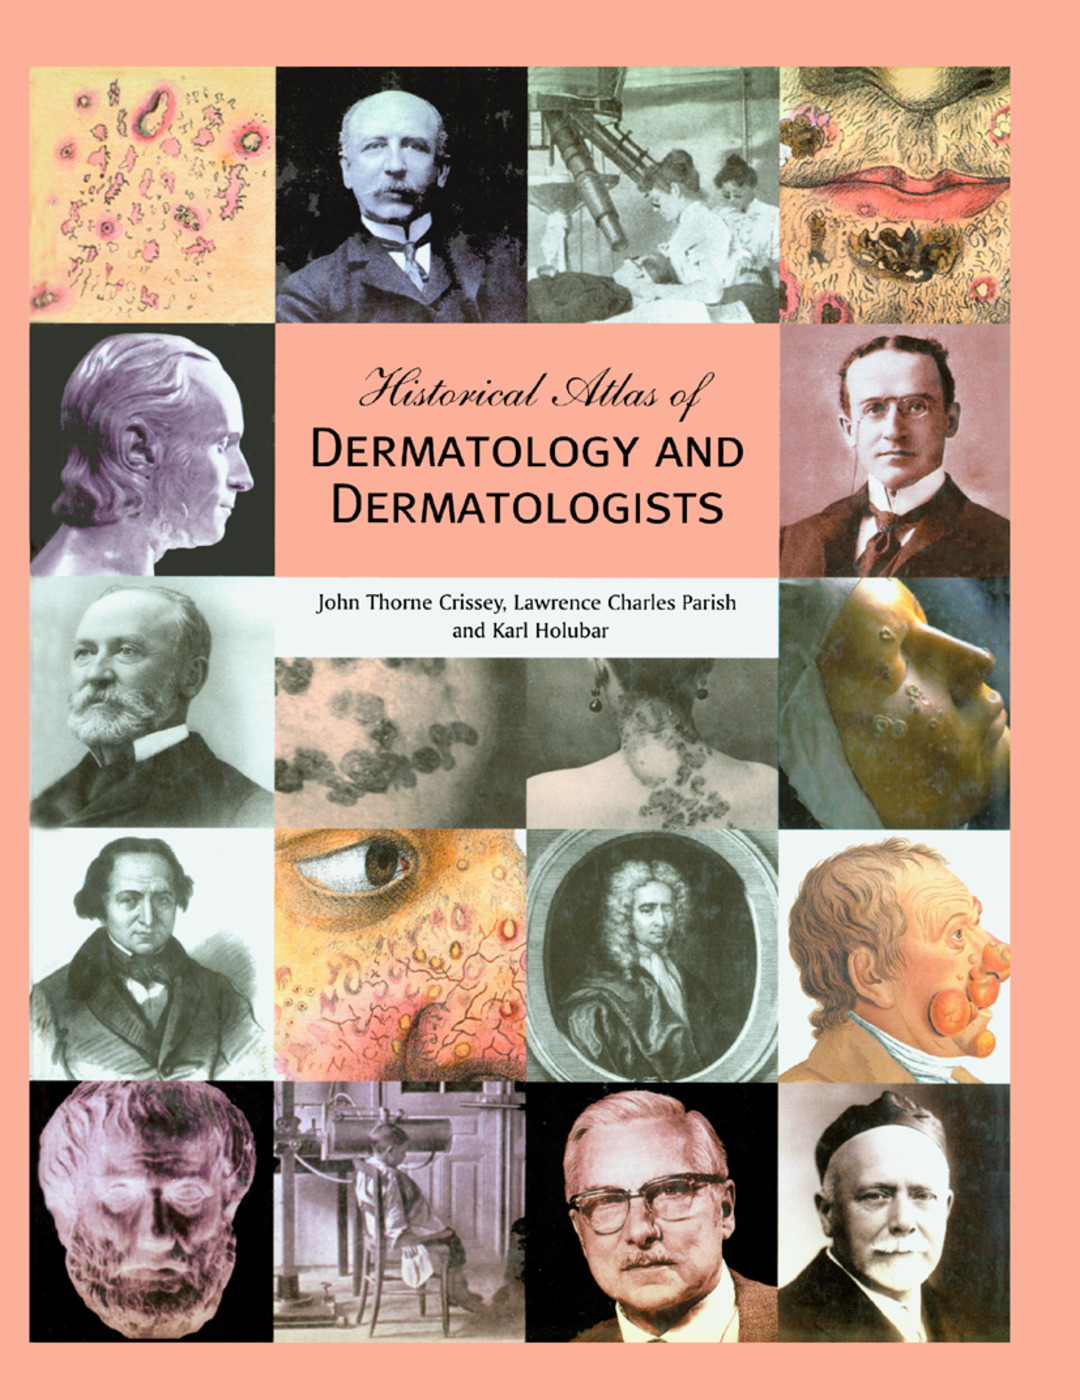 Historical Atlas of Dermatology and Dermatologists